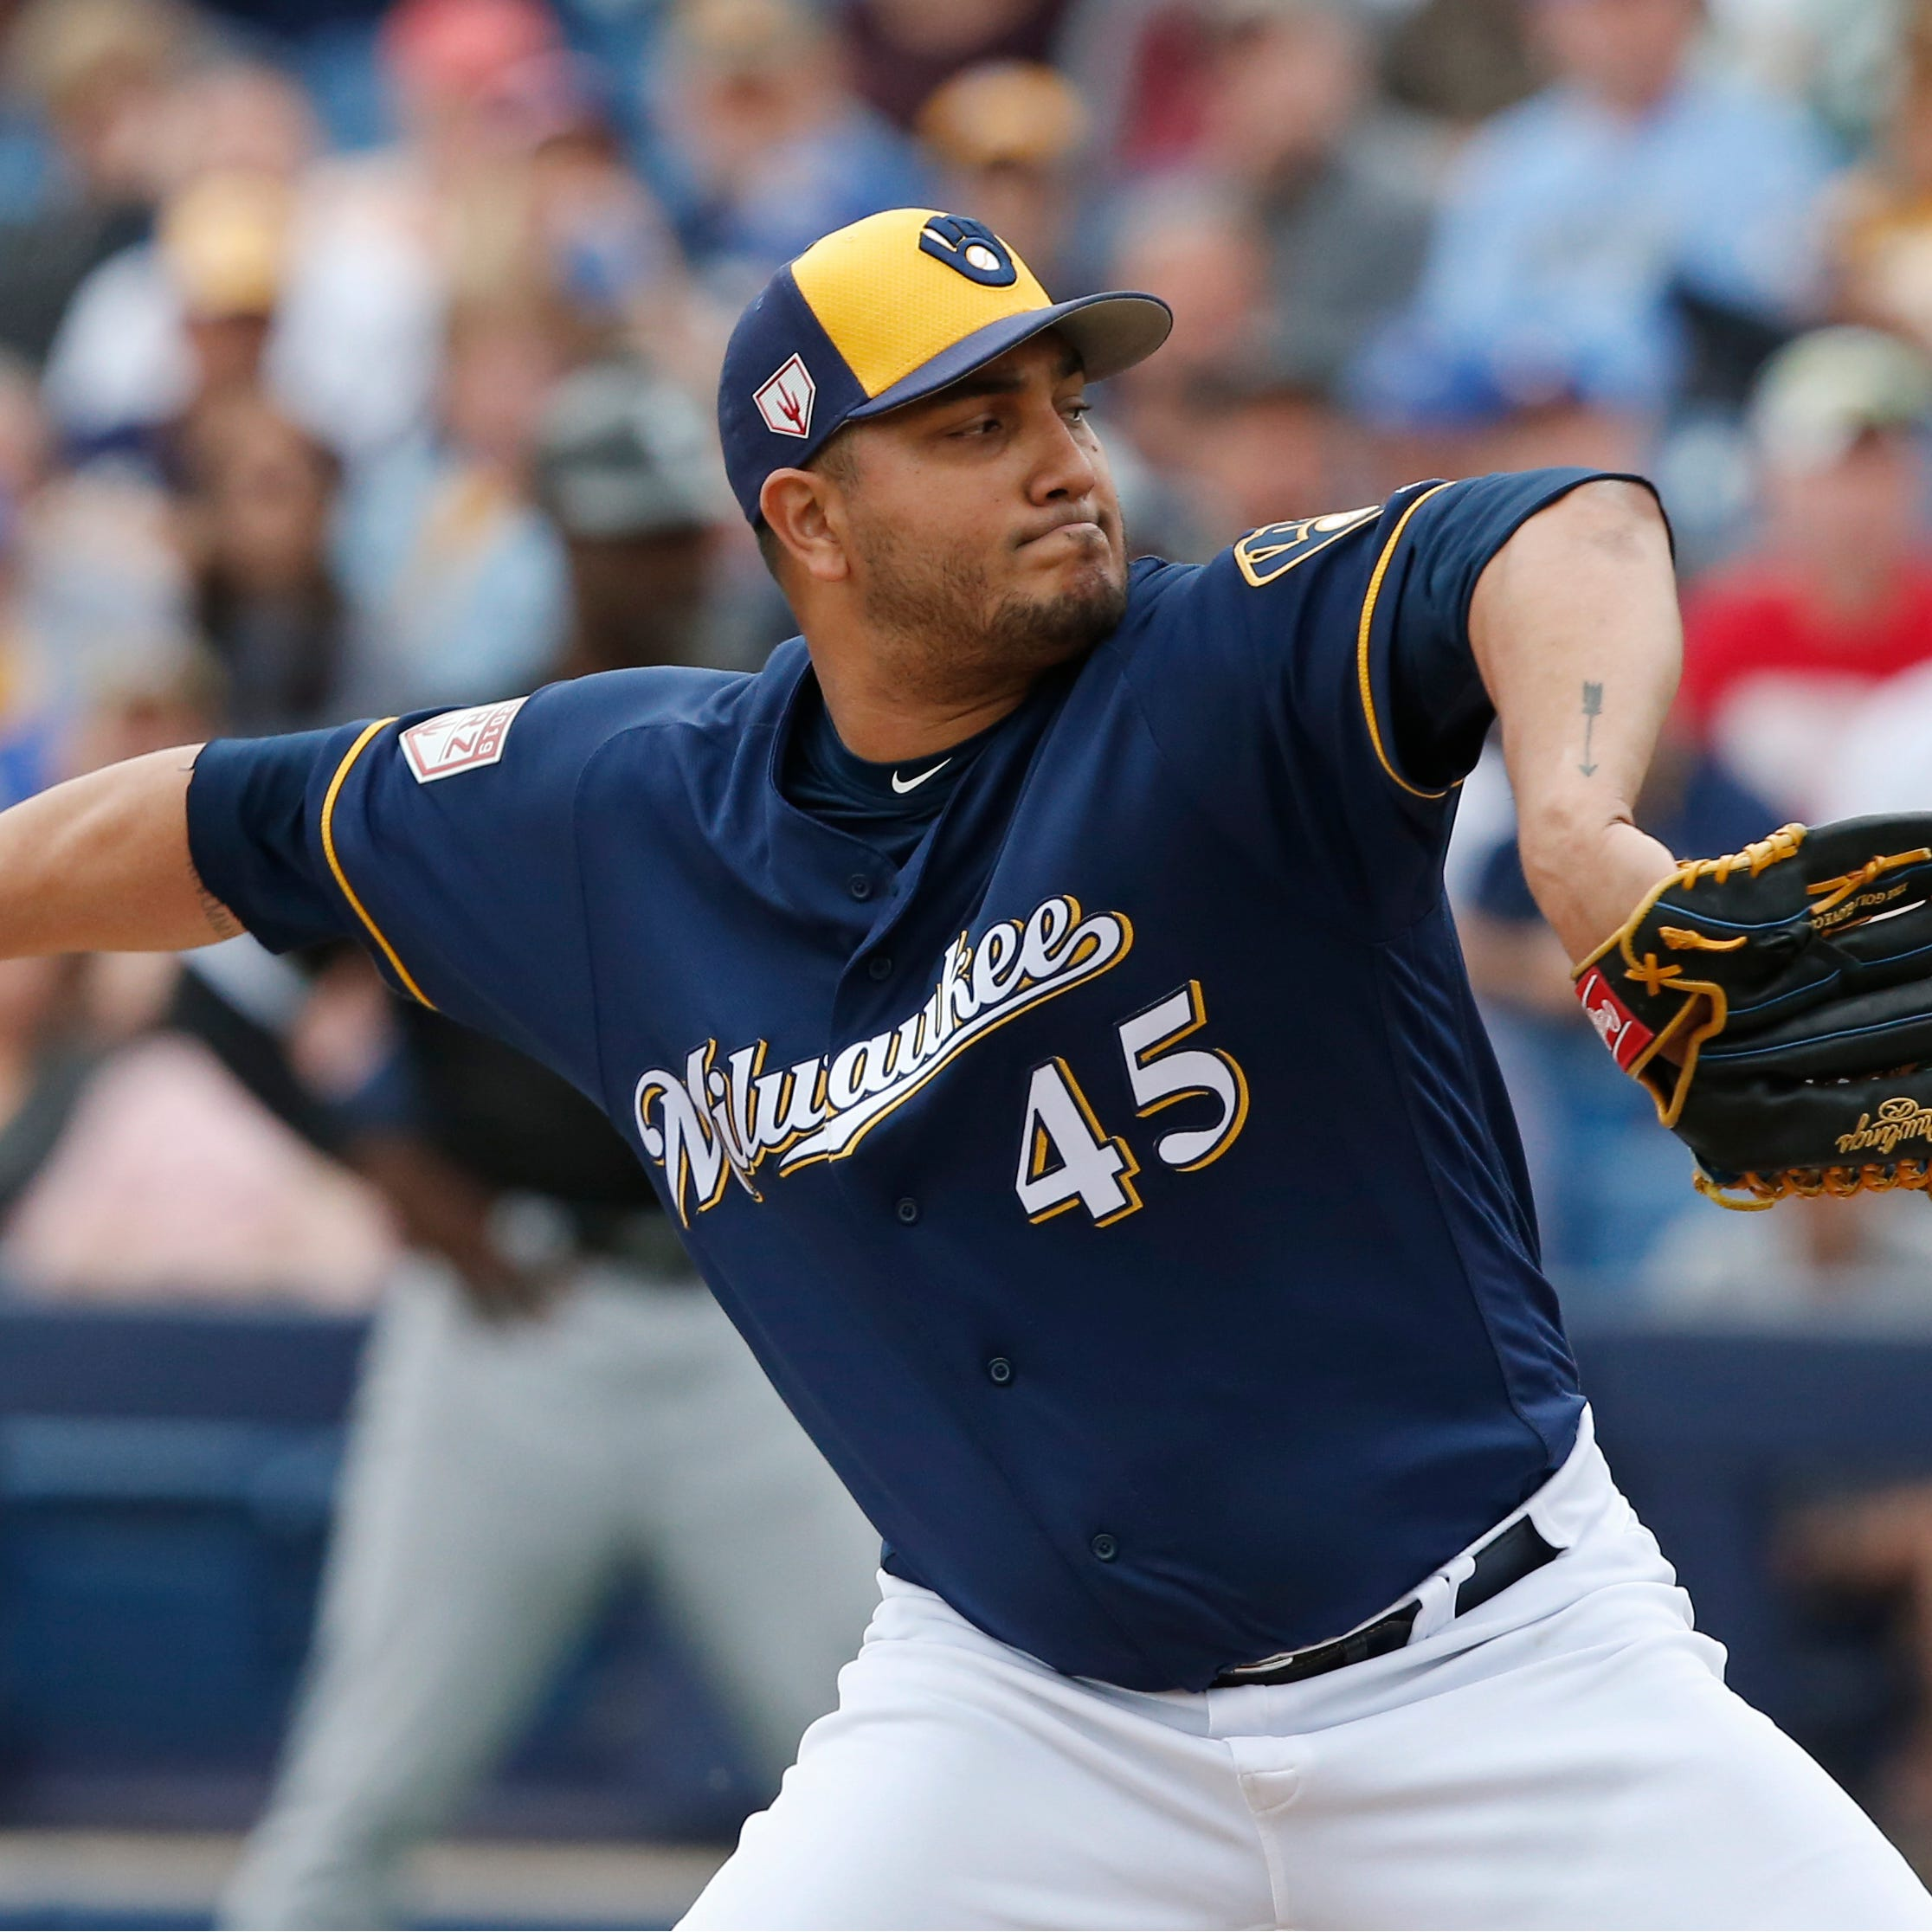 Craig Counsell names Jhoulys Chacín as Brewers' opening-day starter